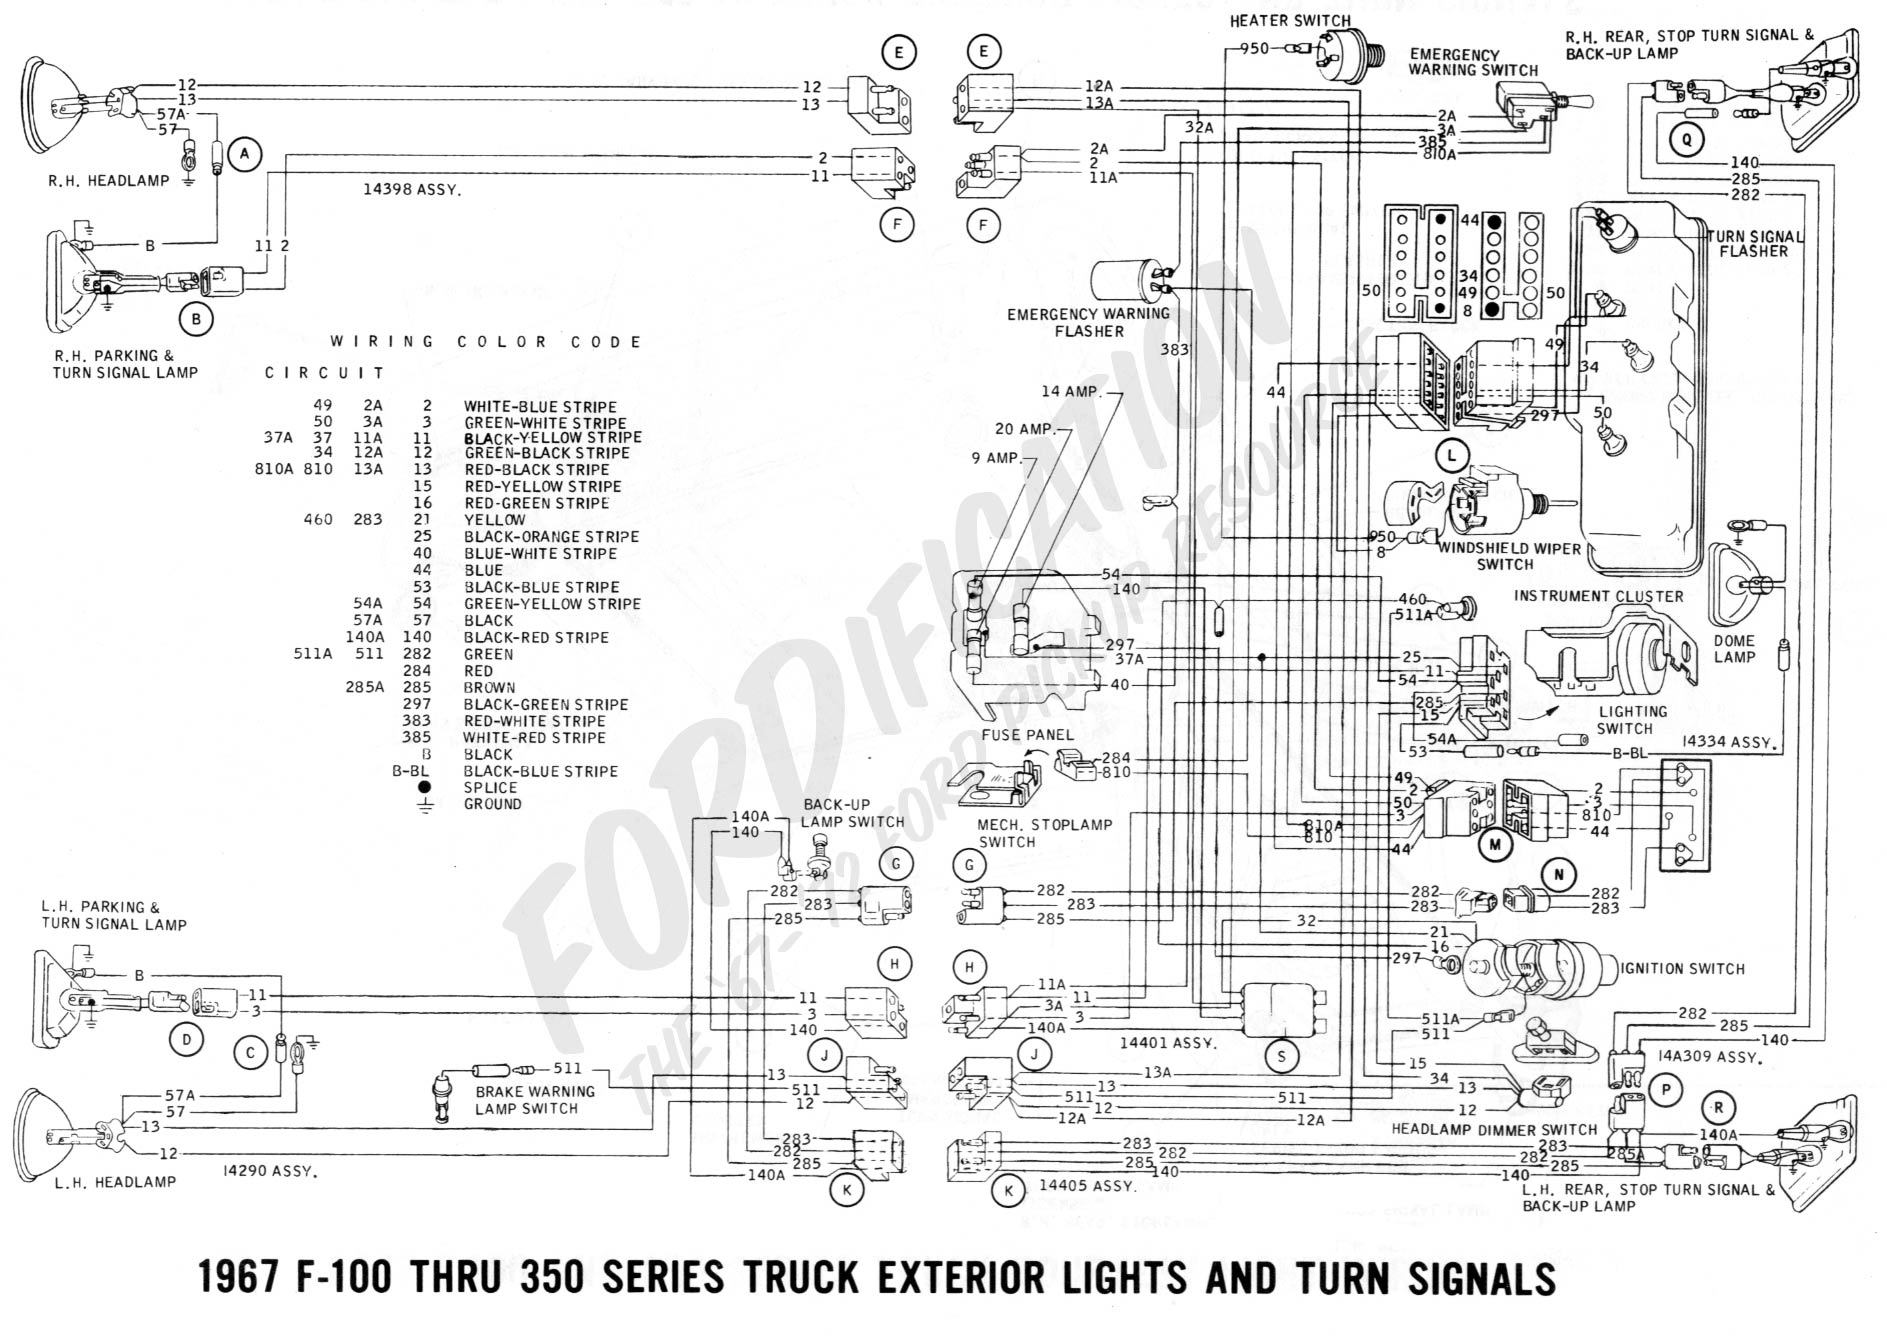 80 1967_exterior_lights_and_turn_signals_page_2_1db6c529c4c9567560e56d6320f993290ba5b803 1967 mustang wiring diagram efcaviation com 1968 ford mustang wiring diagram at bayanpartner.co